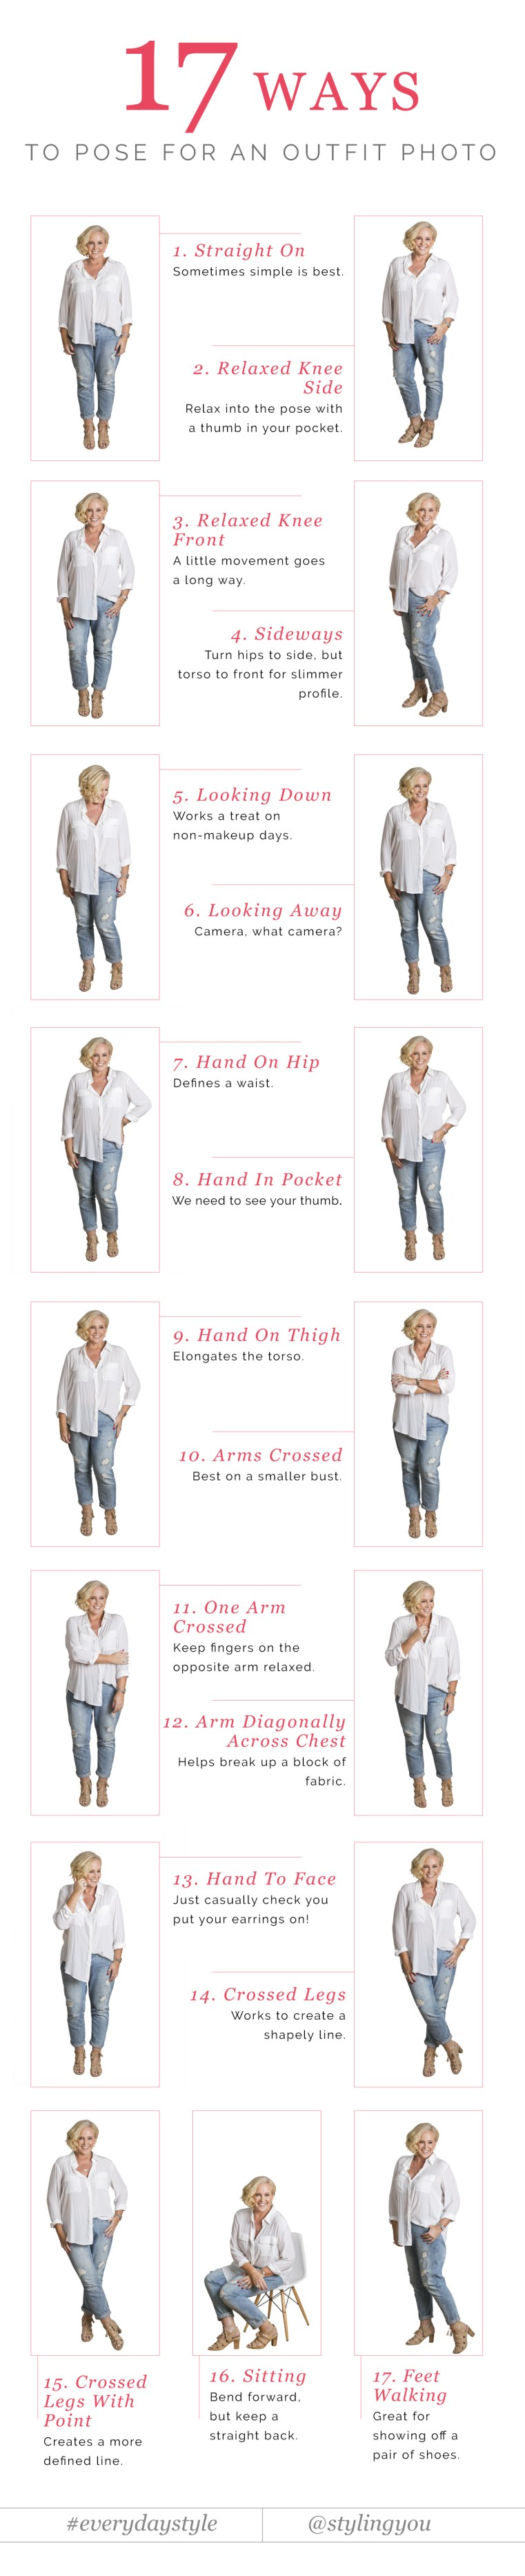 17 ways to pose for outfit photos and feel confident | Styling You #everydaystyle